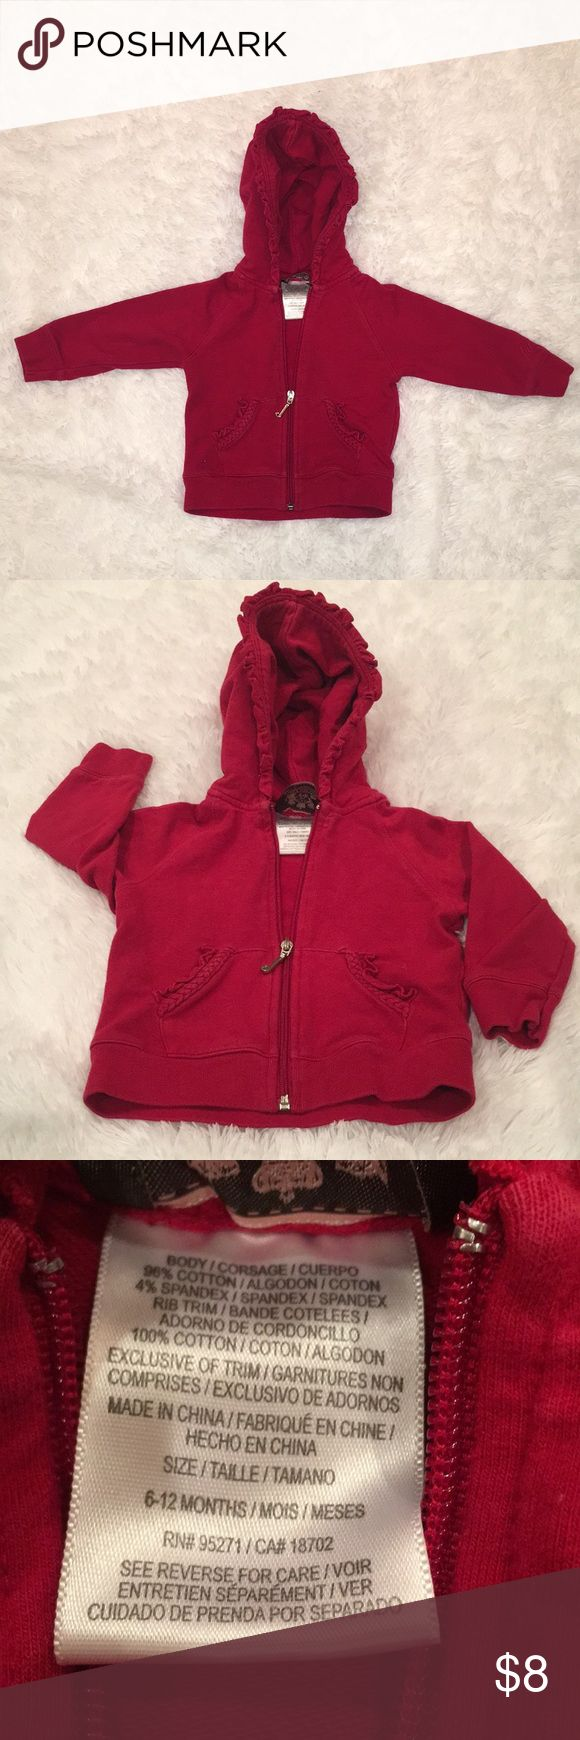 Juicy Couture Red Zip Up Jacket, 6-12 months Juicy Couture Red Zip Up Jacket, 6-12 months. In very good preowned condition! Comes from smoke-free home! Juicy Couture Jackets & Coats